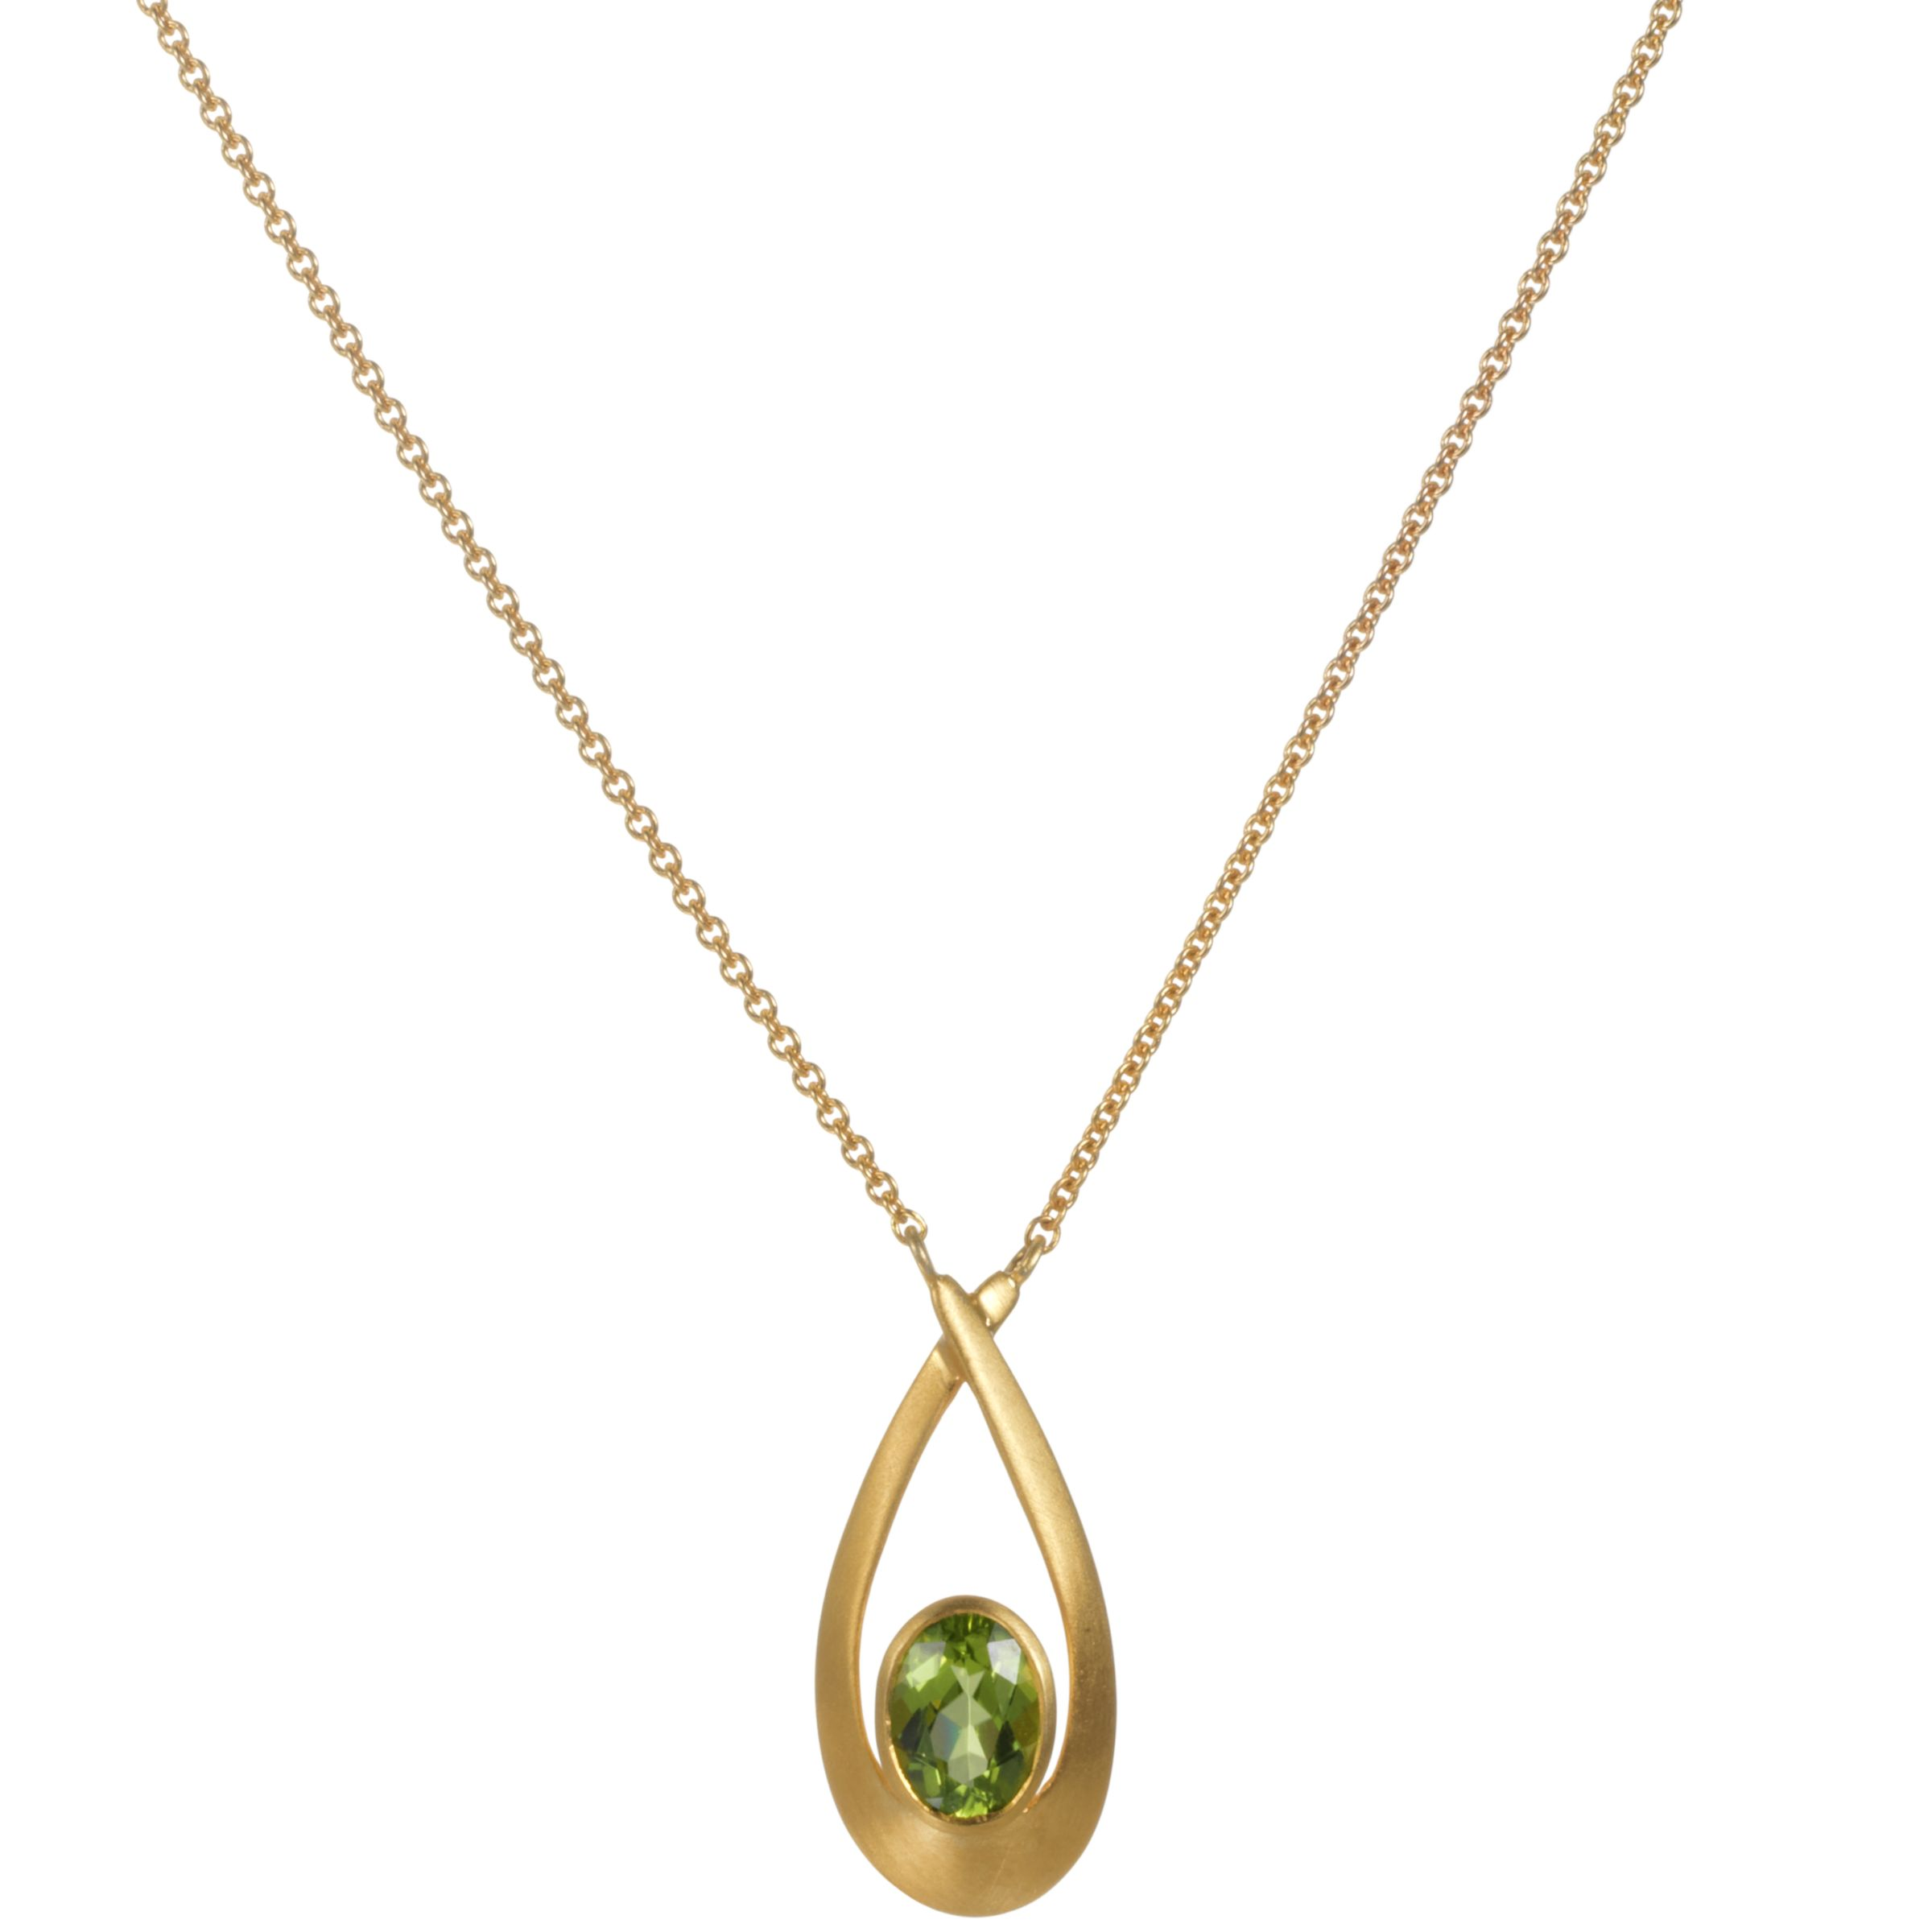 9ct Yellow Gold Satin Finished Peridot Pendant Necklace